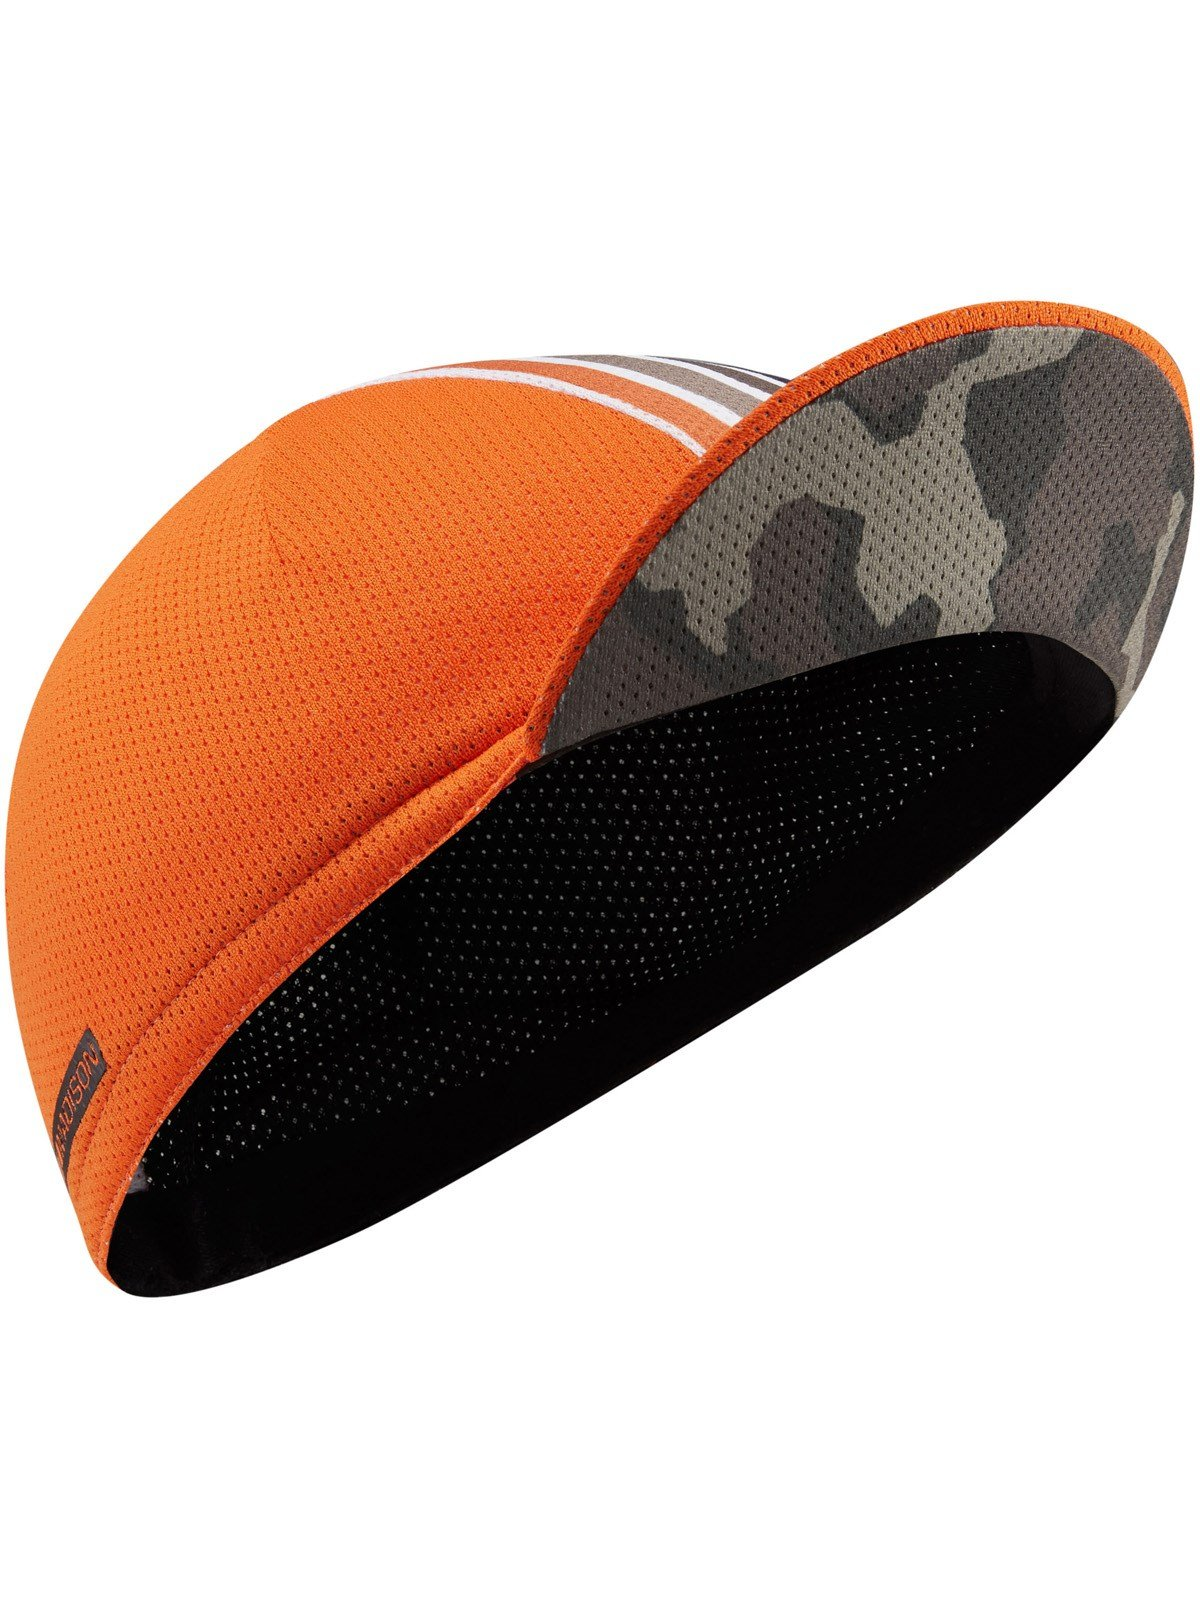 Madison Olive Camo-Shocking Orange 2017 Roadrace Premio Cycling Cap (Default, Orange)